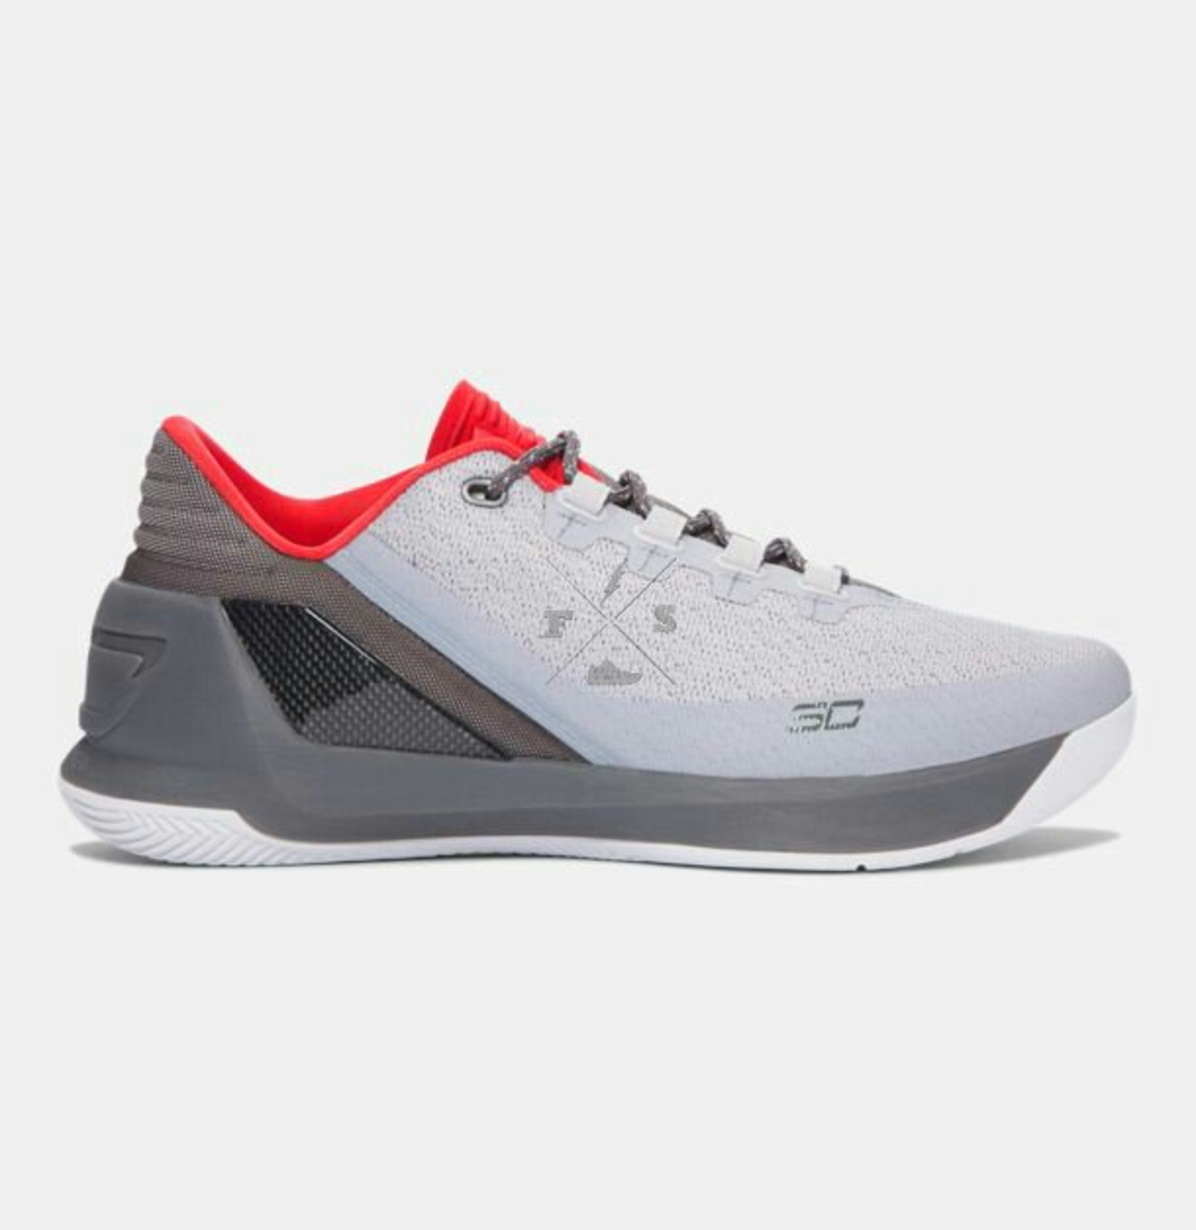 Under Armour Unveils Curry 3 Lows for ASW: 122, Dark Horse ...